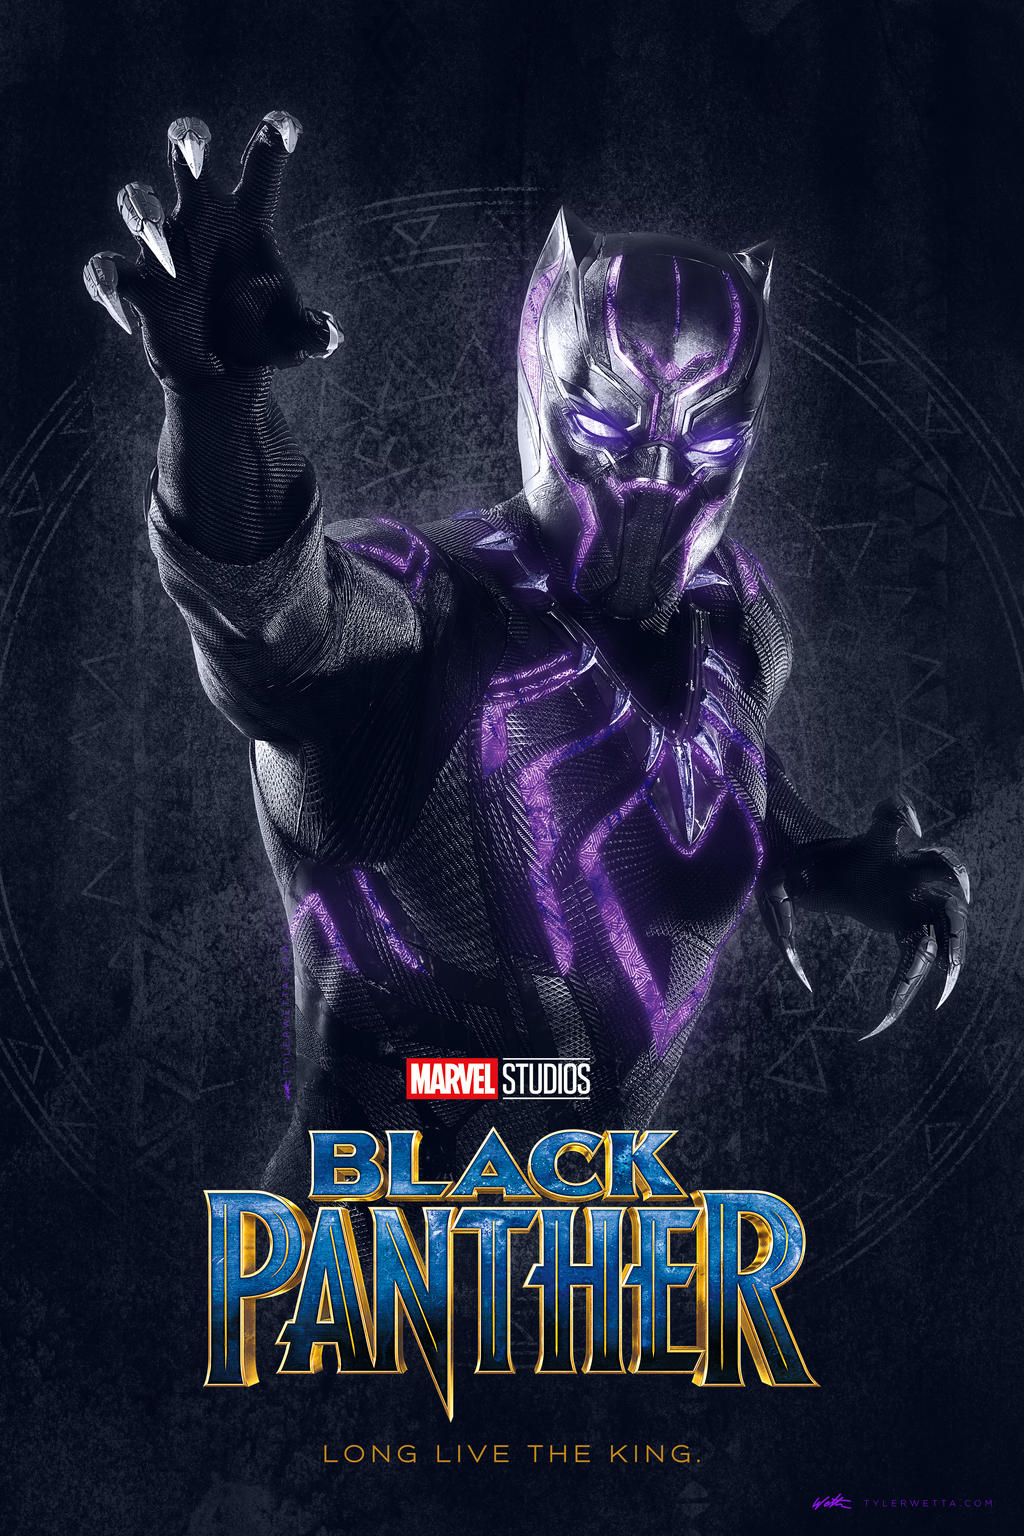 BlackPantherPoster2v1 by tyler-wetta